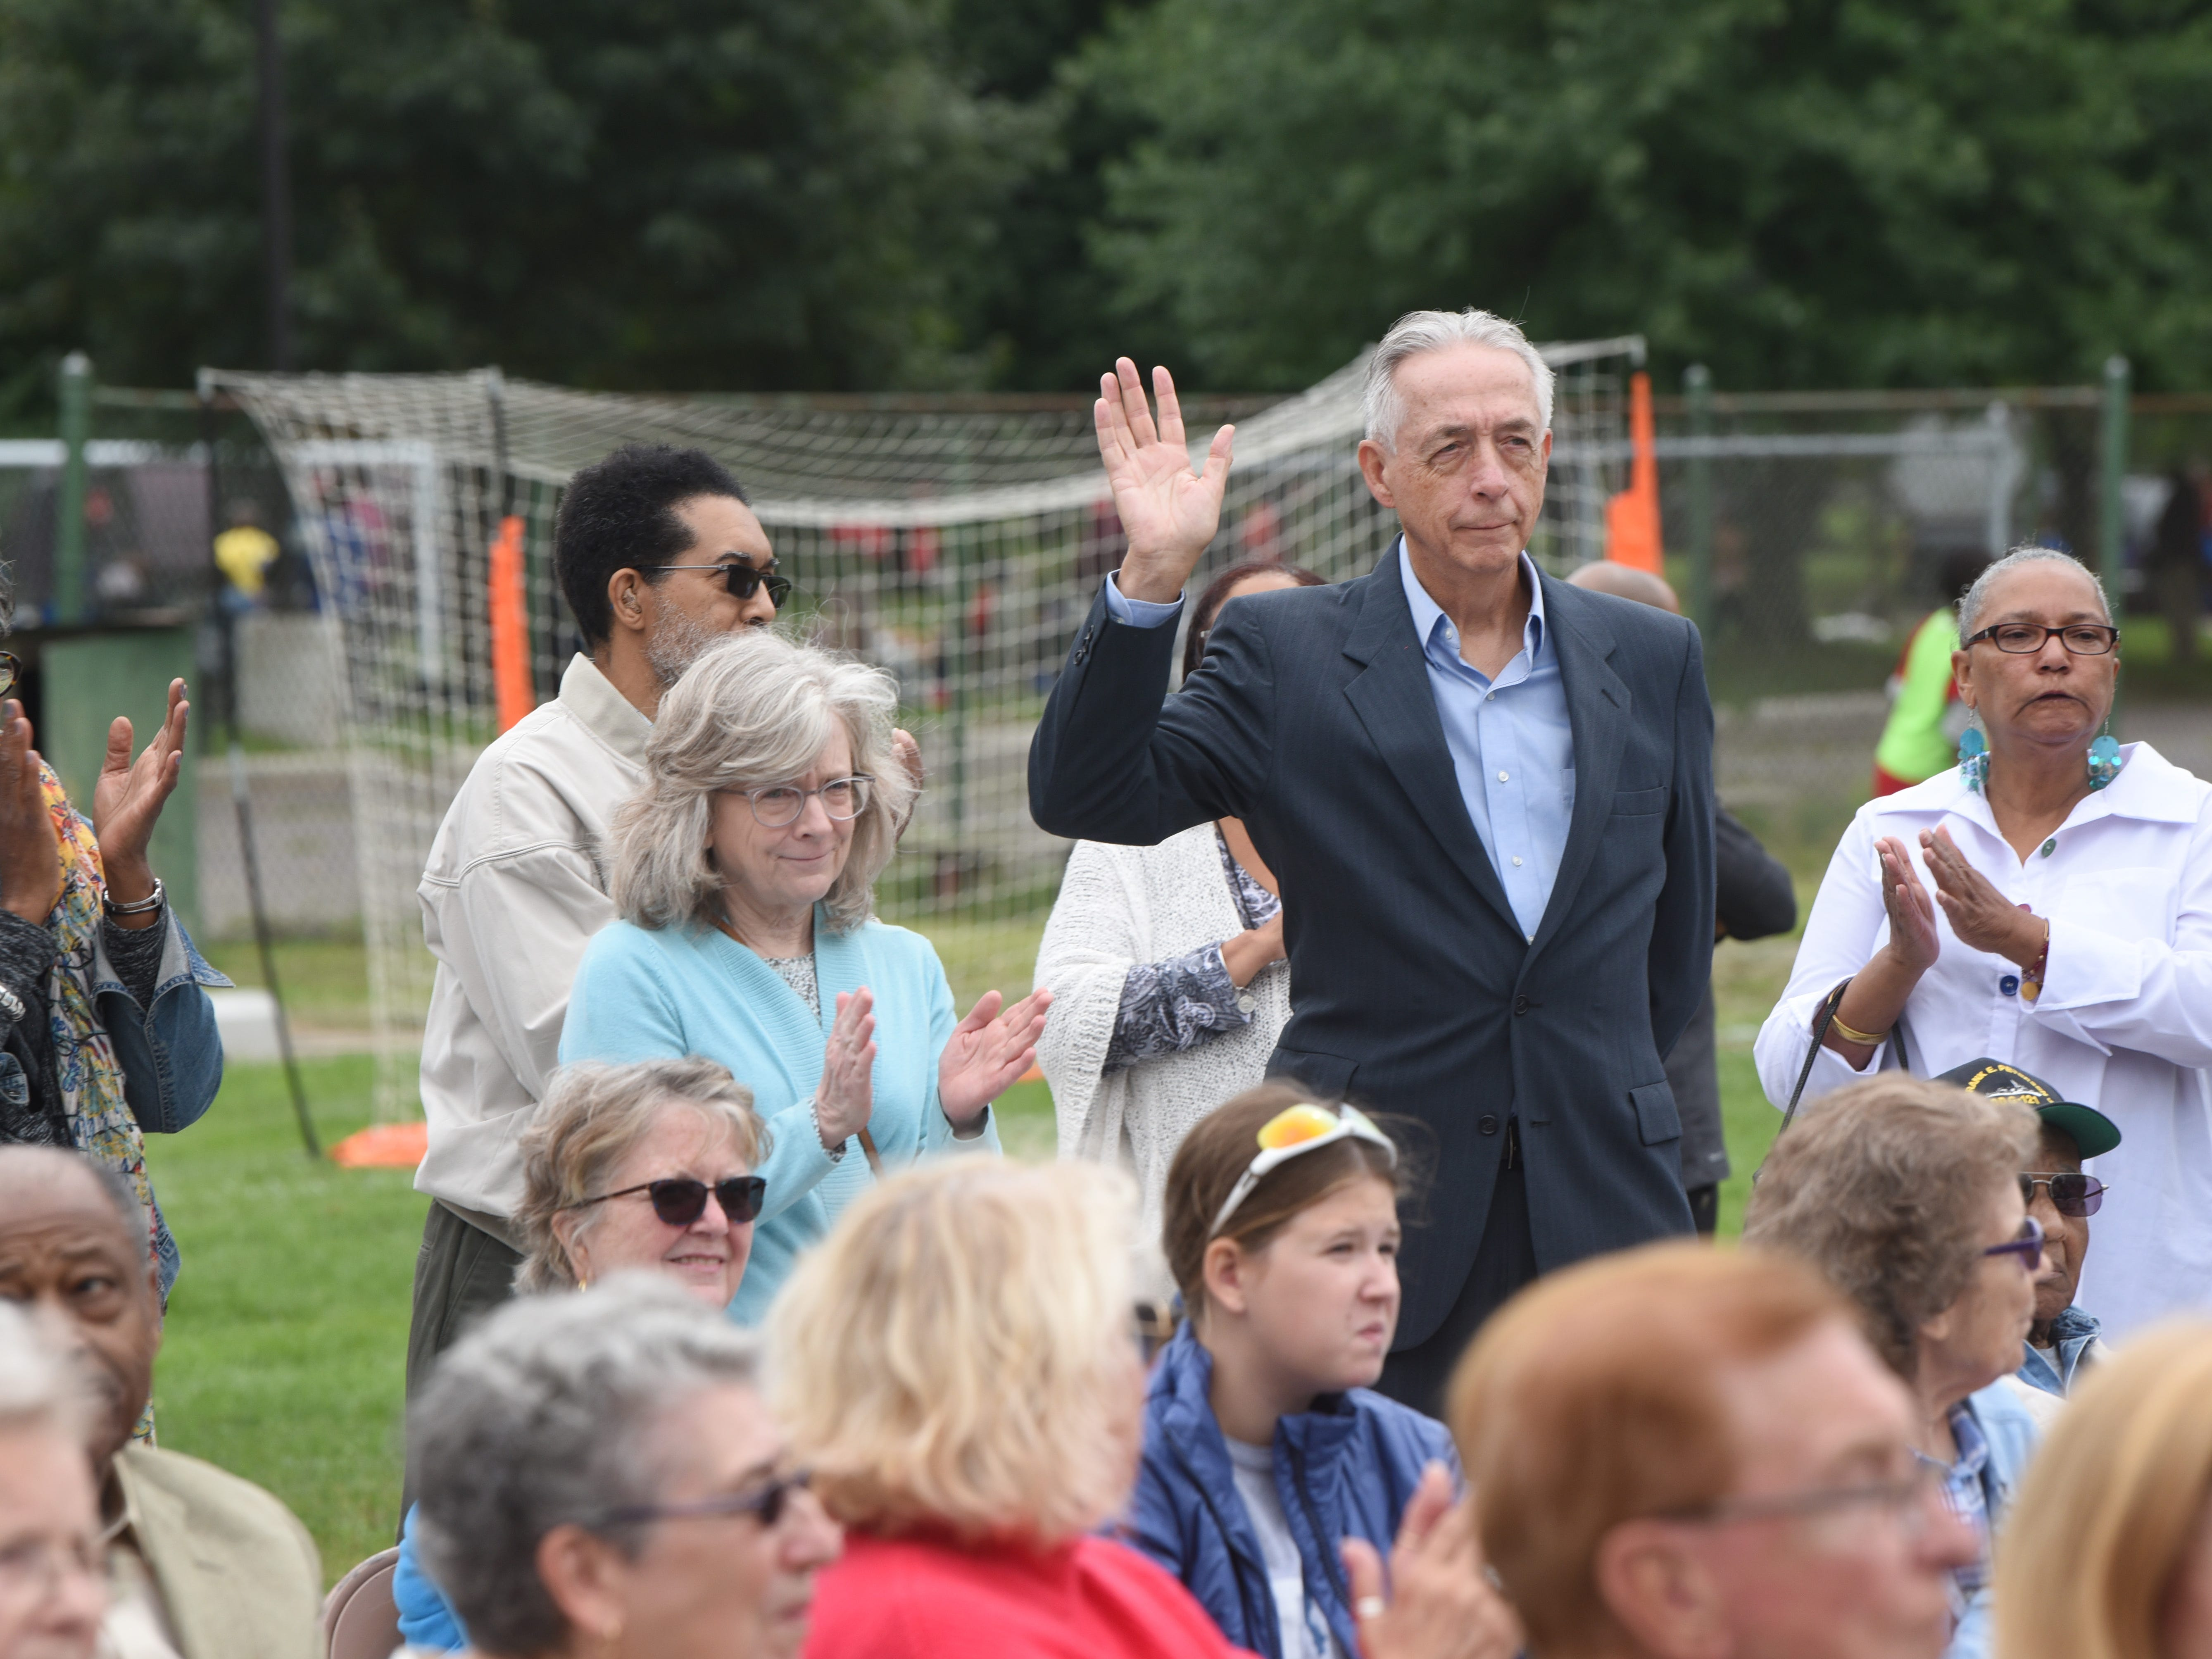 Bill Frey, right, president, North Rosedale Park Community Association,  waves to the crowd during the dedication ceremony.